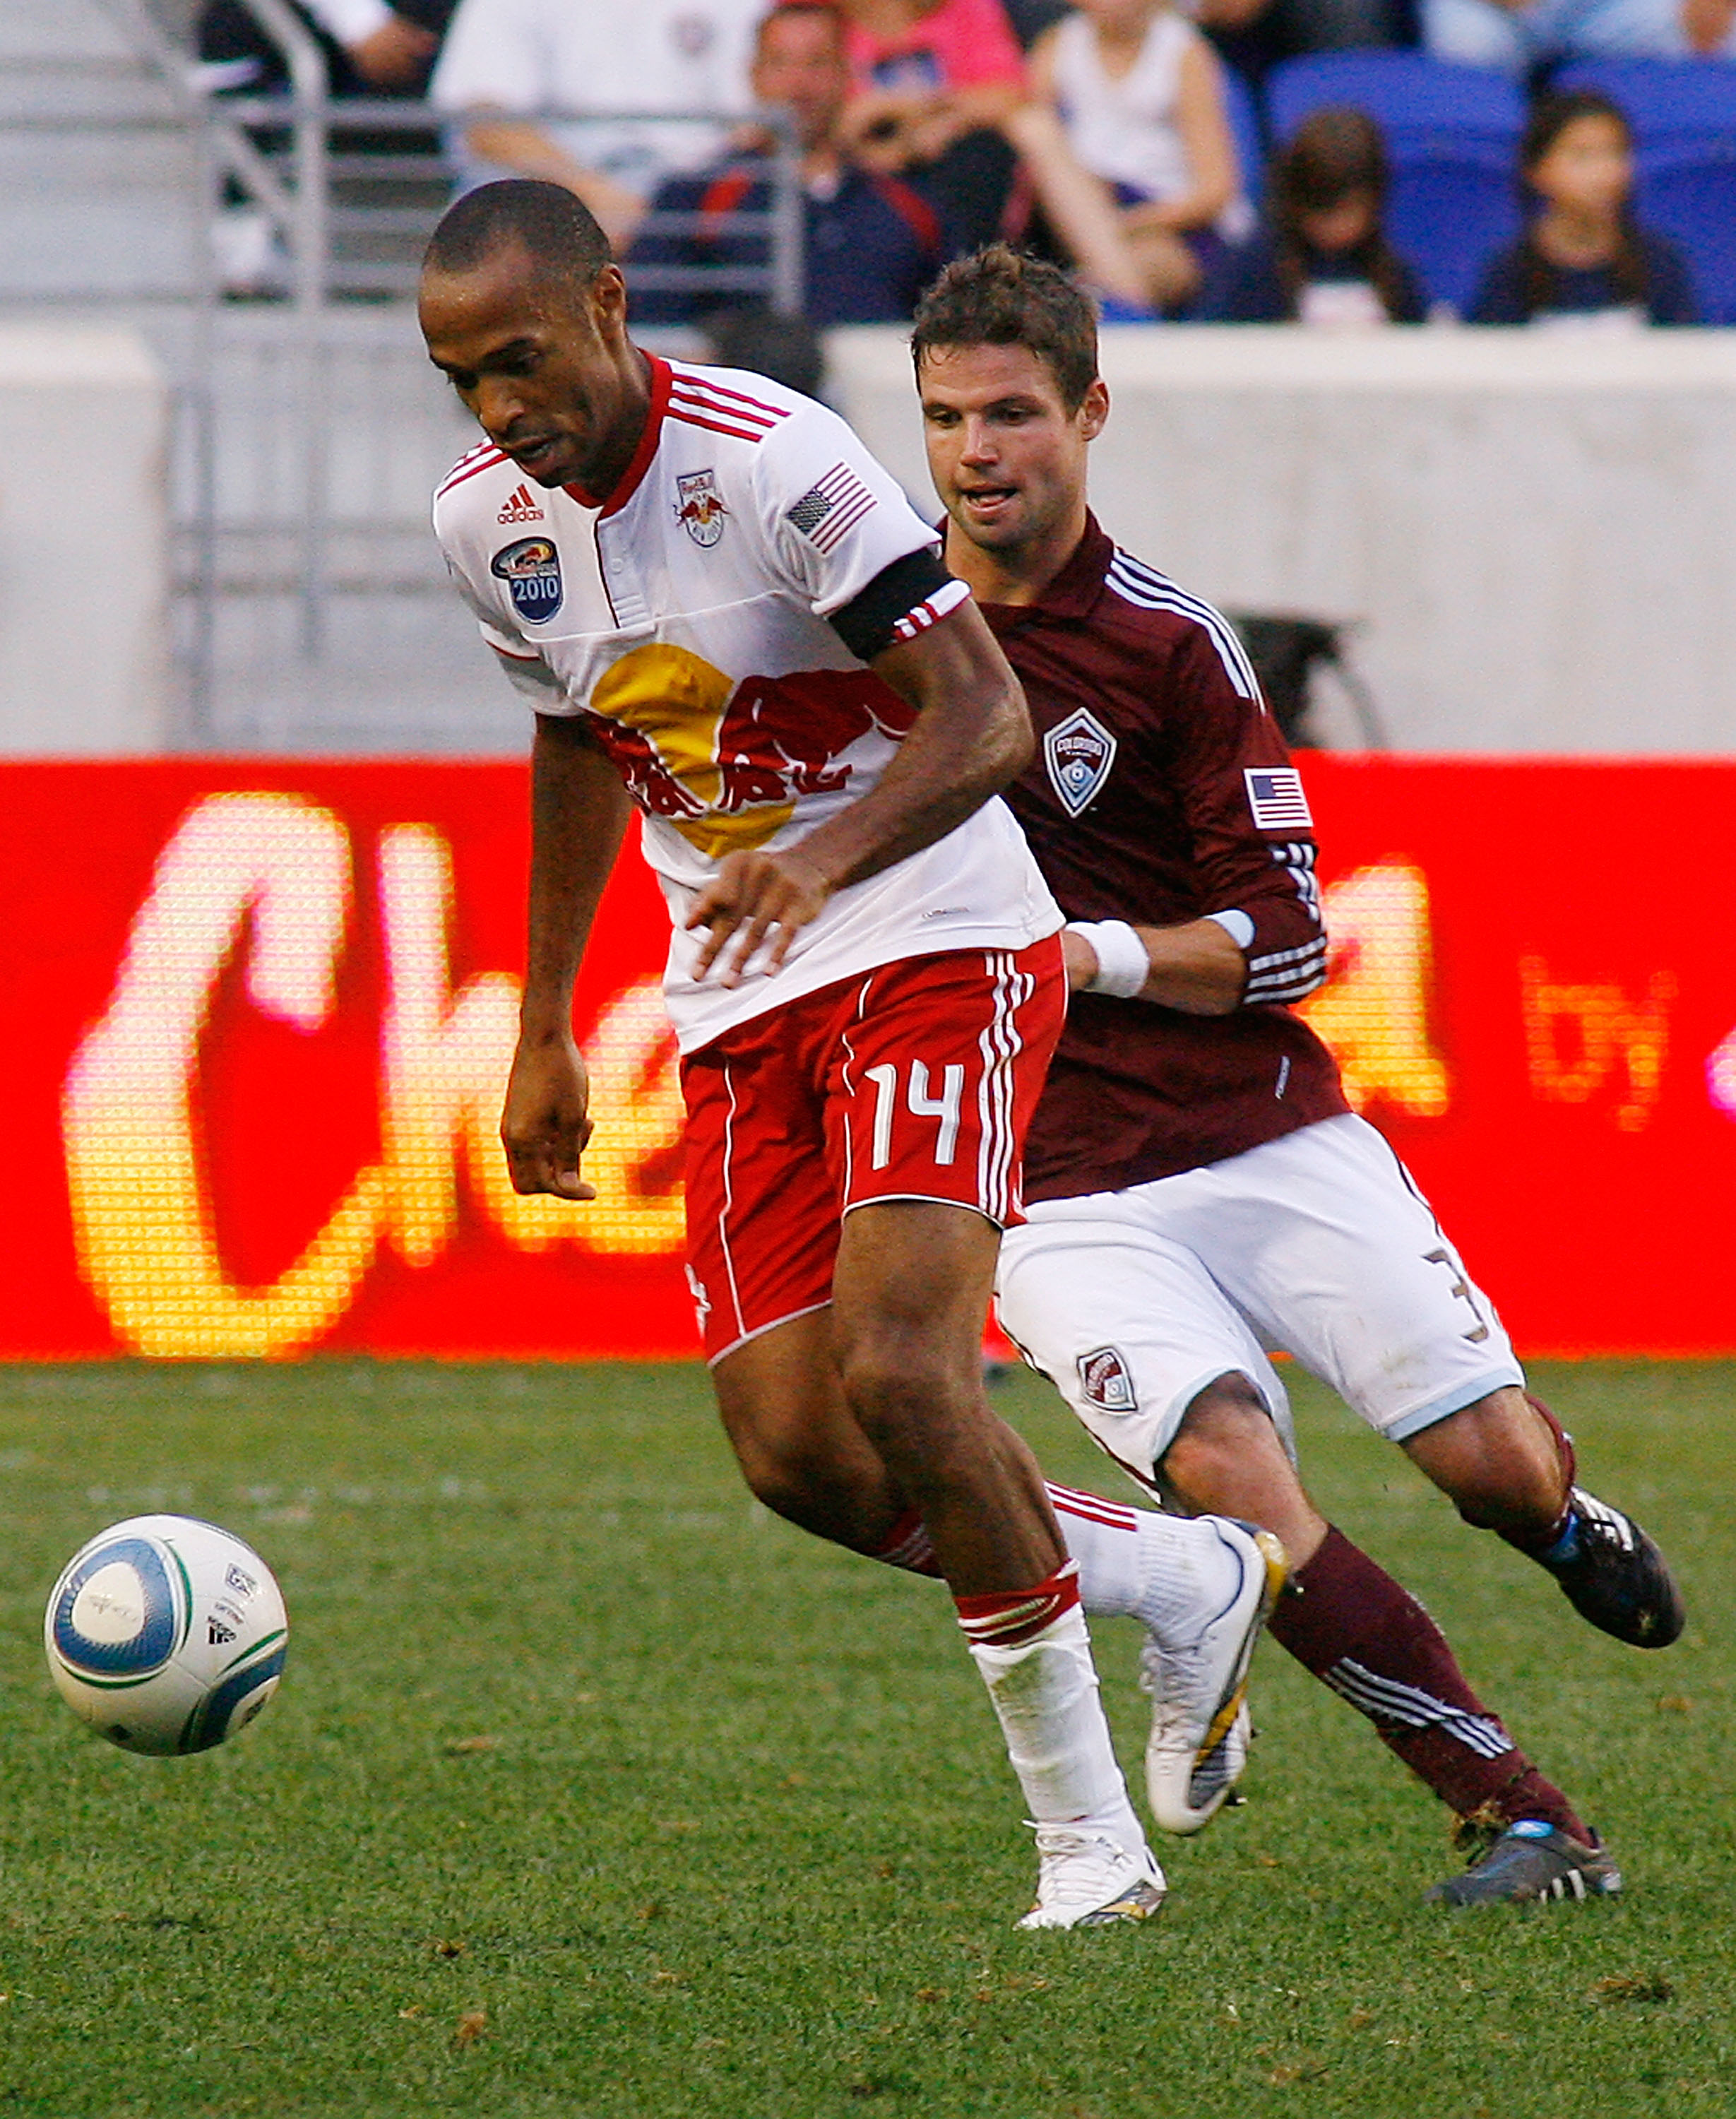 HARRISON, NJ - SEPTEMBER 11: Thierry Henry #14 of the New York Red Bulls plays the ball away from Drew Moor #3 of the Colorado Rapids during the game at Red Bull Arena on September 11, 2010 in Harrison, New Jersey. (Photo by Andy Marlin/Getty Images )